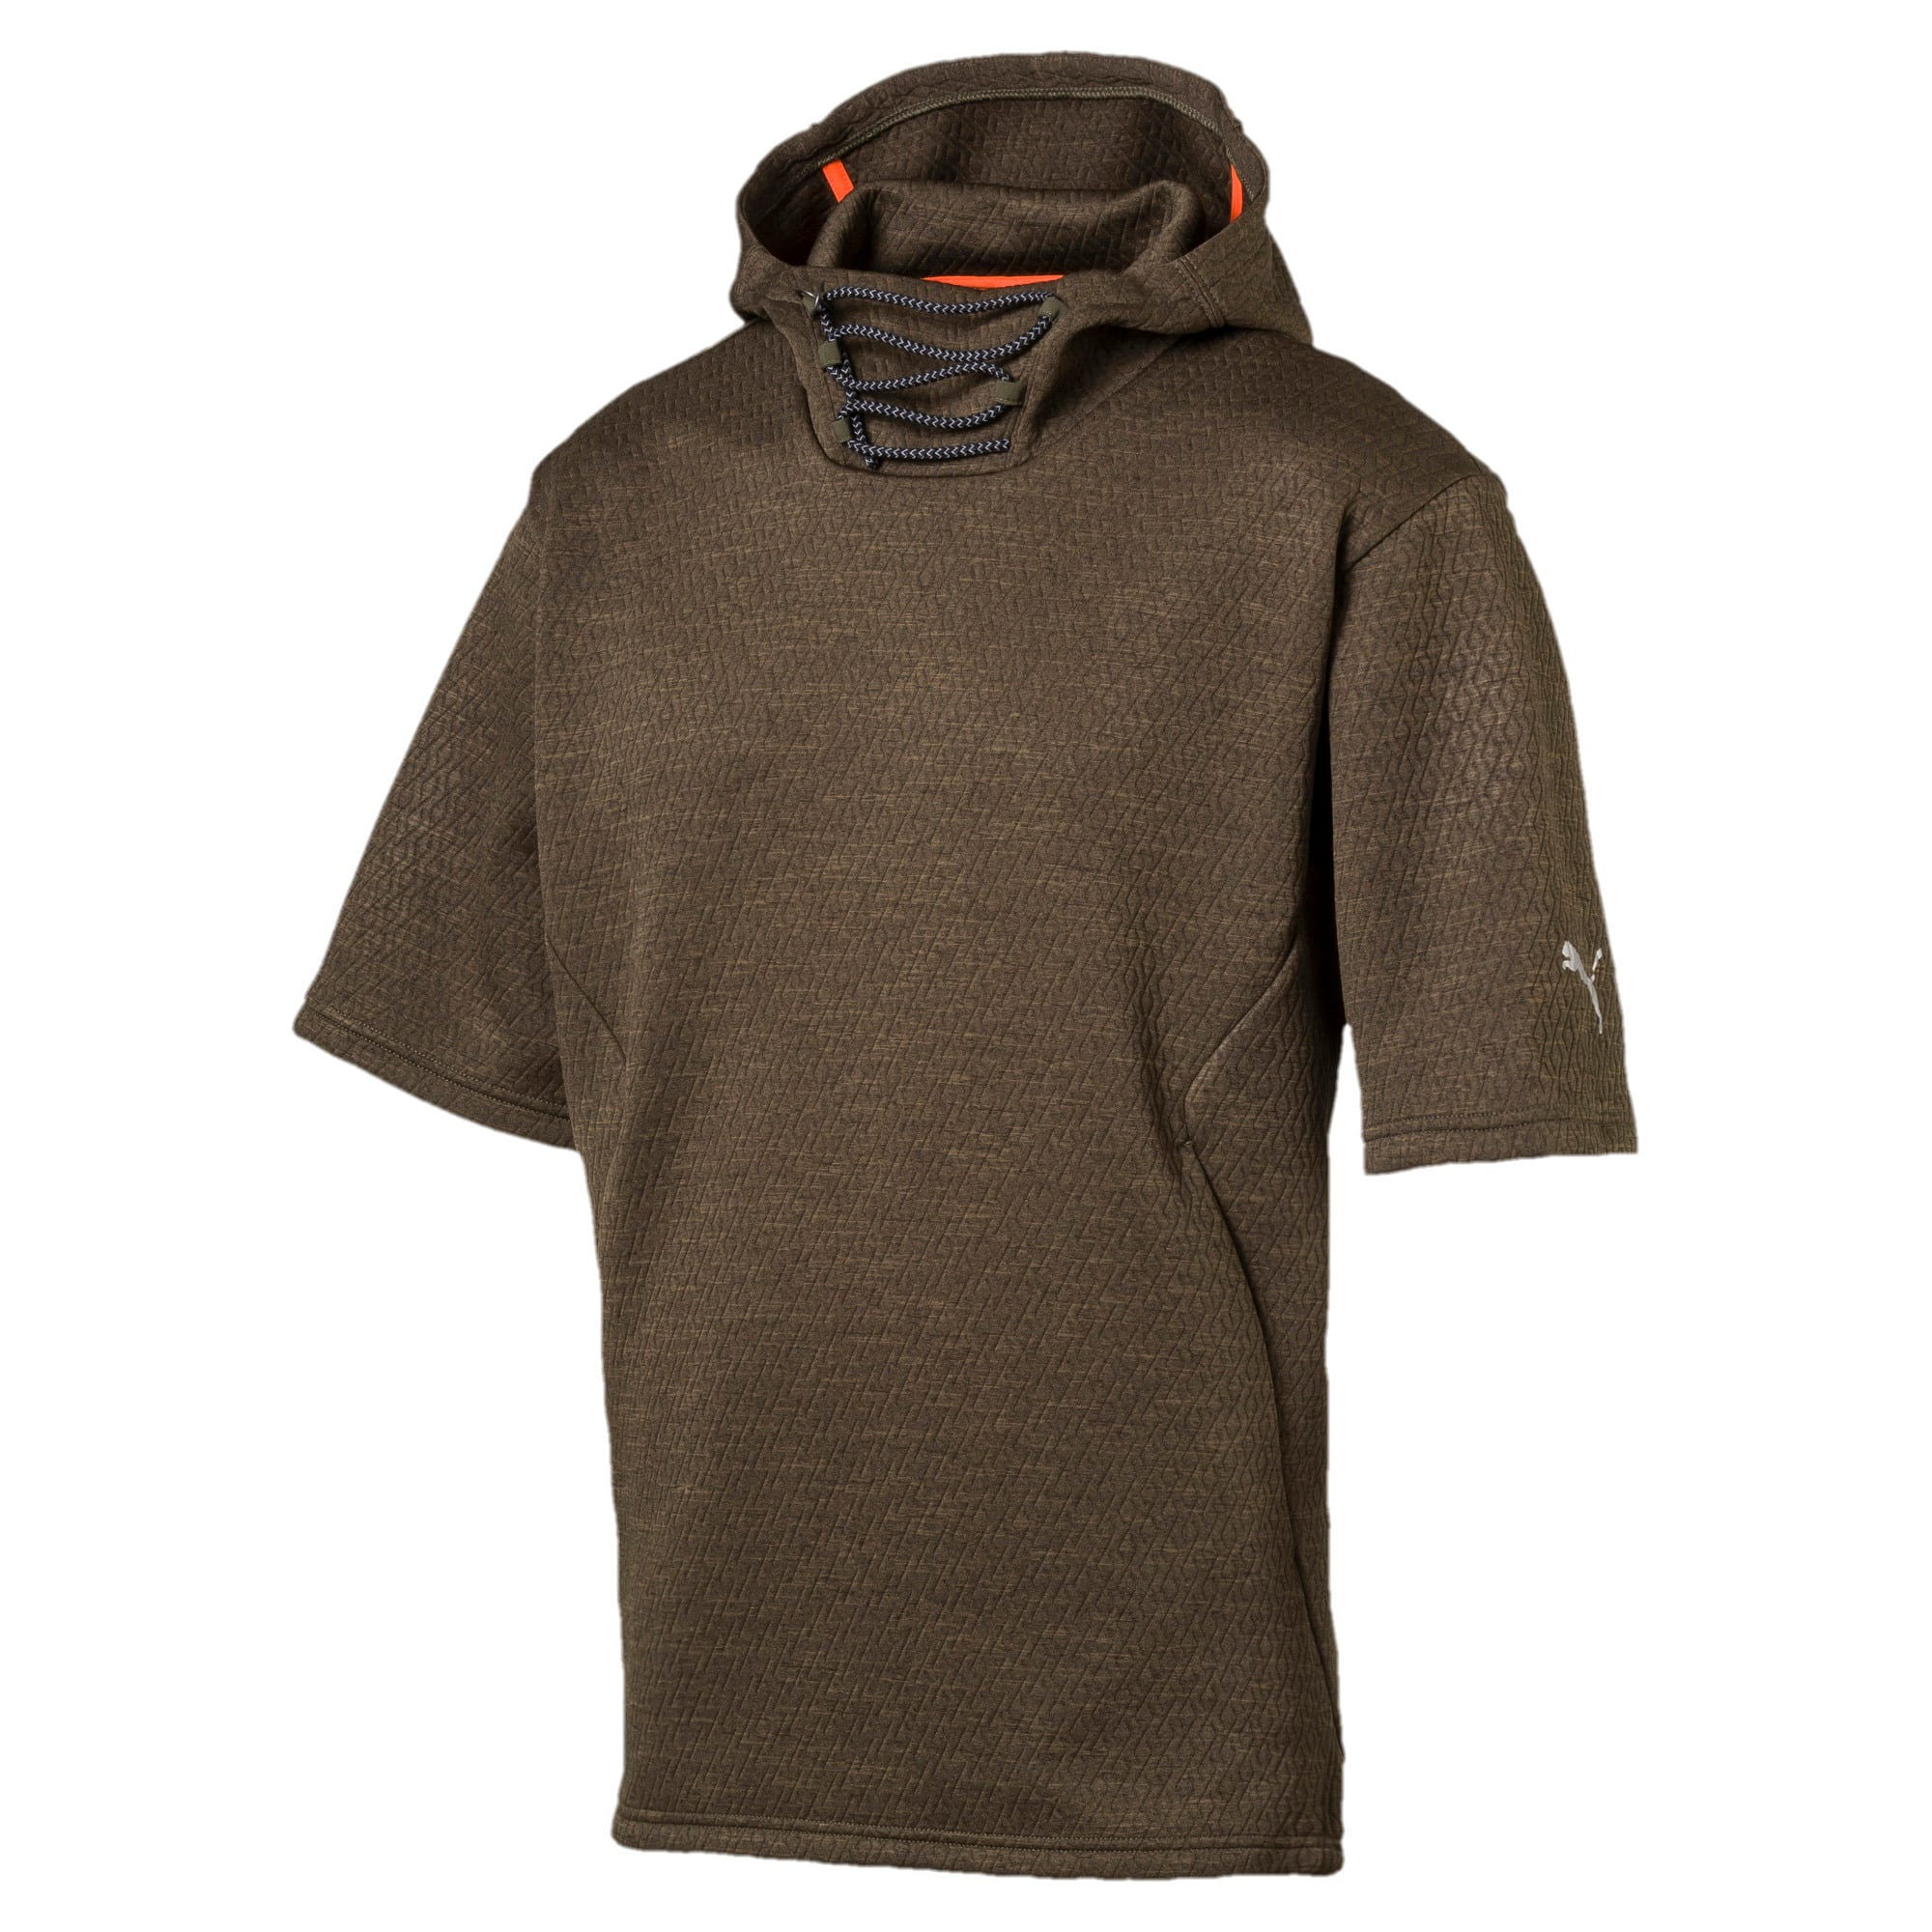 Thumbnail 4 of Training Men's Energy Short Sleeve Hoodie, Forest Night Heather, medium-IND